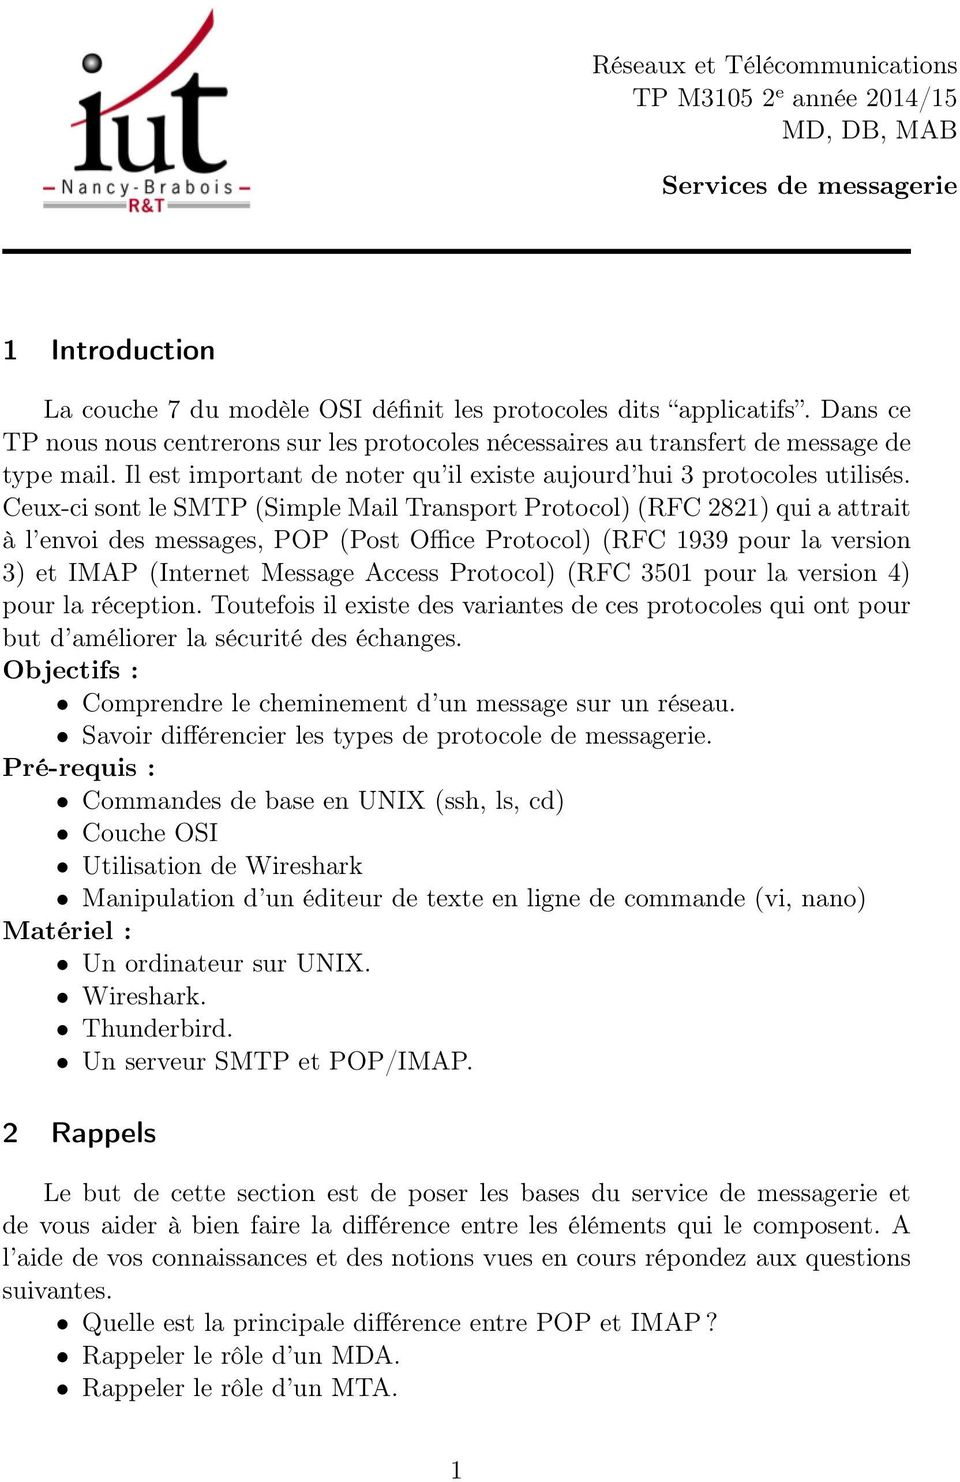 Ceux-ci sont le SMTP (Simple Mail Transport Protocol) (RFC 2821) qui a attrait à l envoi des messages, POP (Post Office Protocol) (RFC 1939 pour la version 3) et IMAP (Internet Message Access